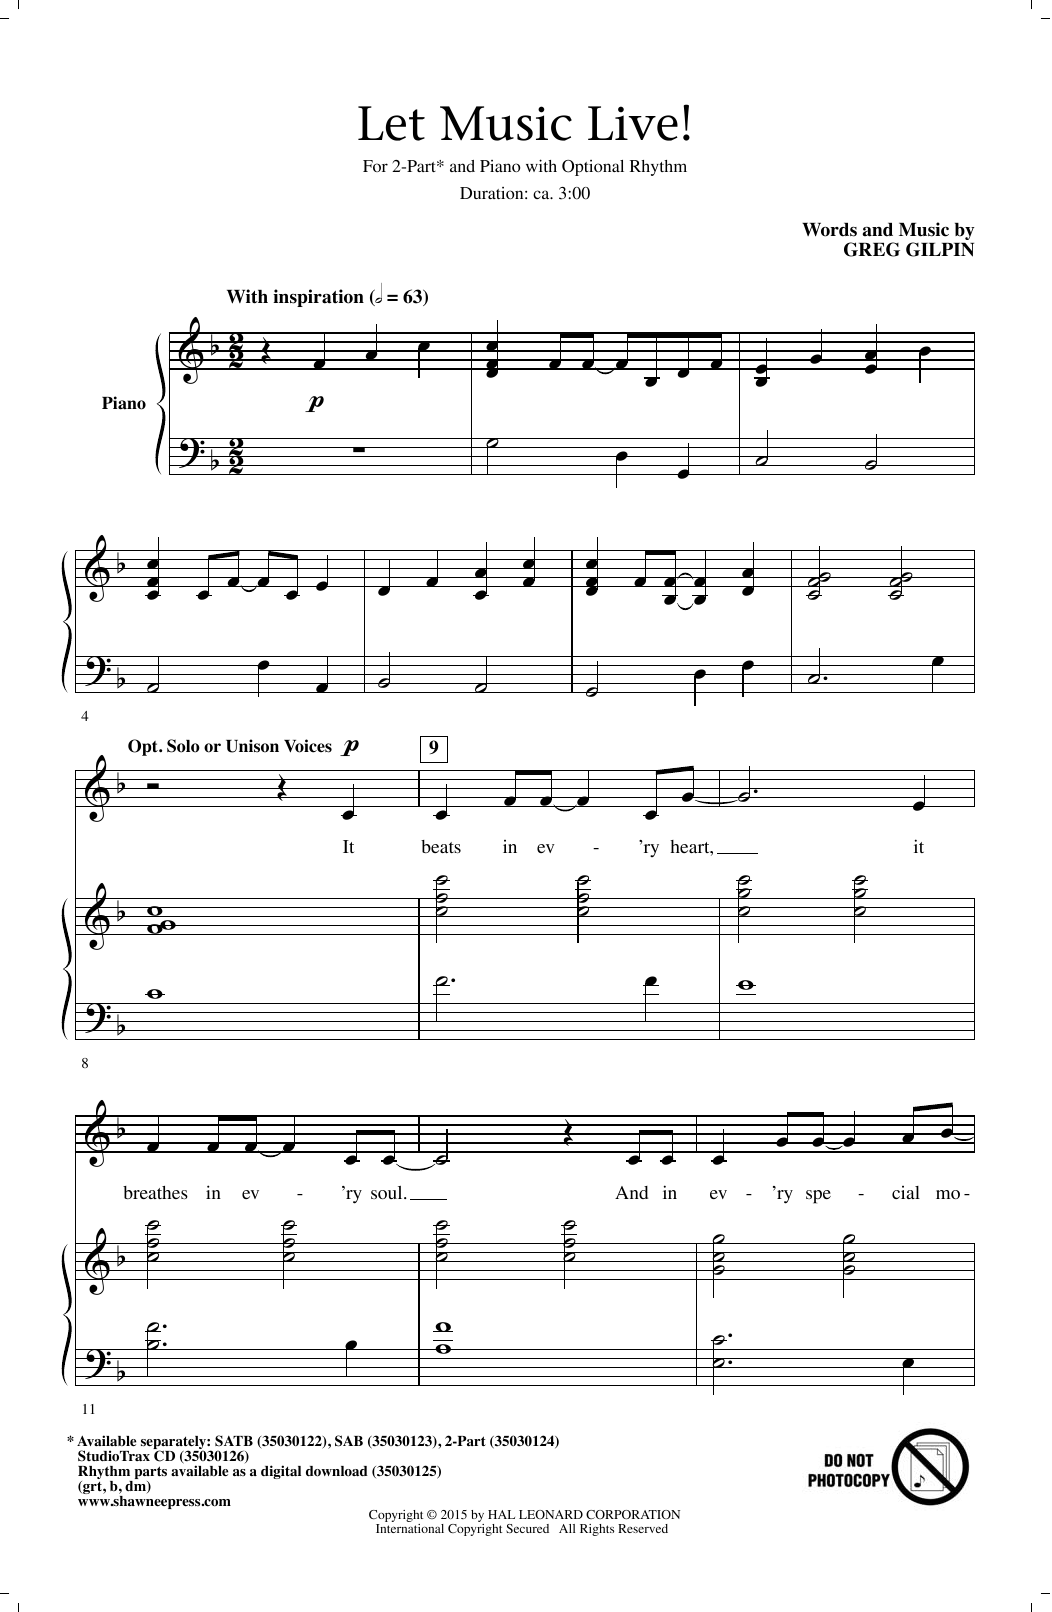 Let Music Live Sheet Music